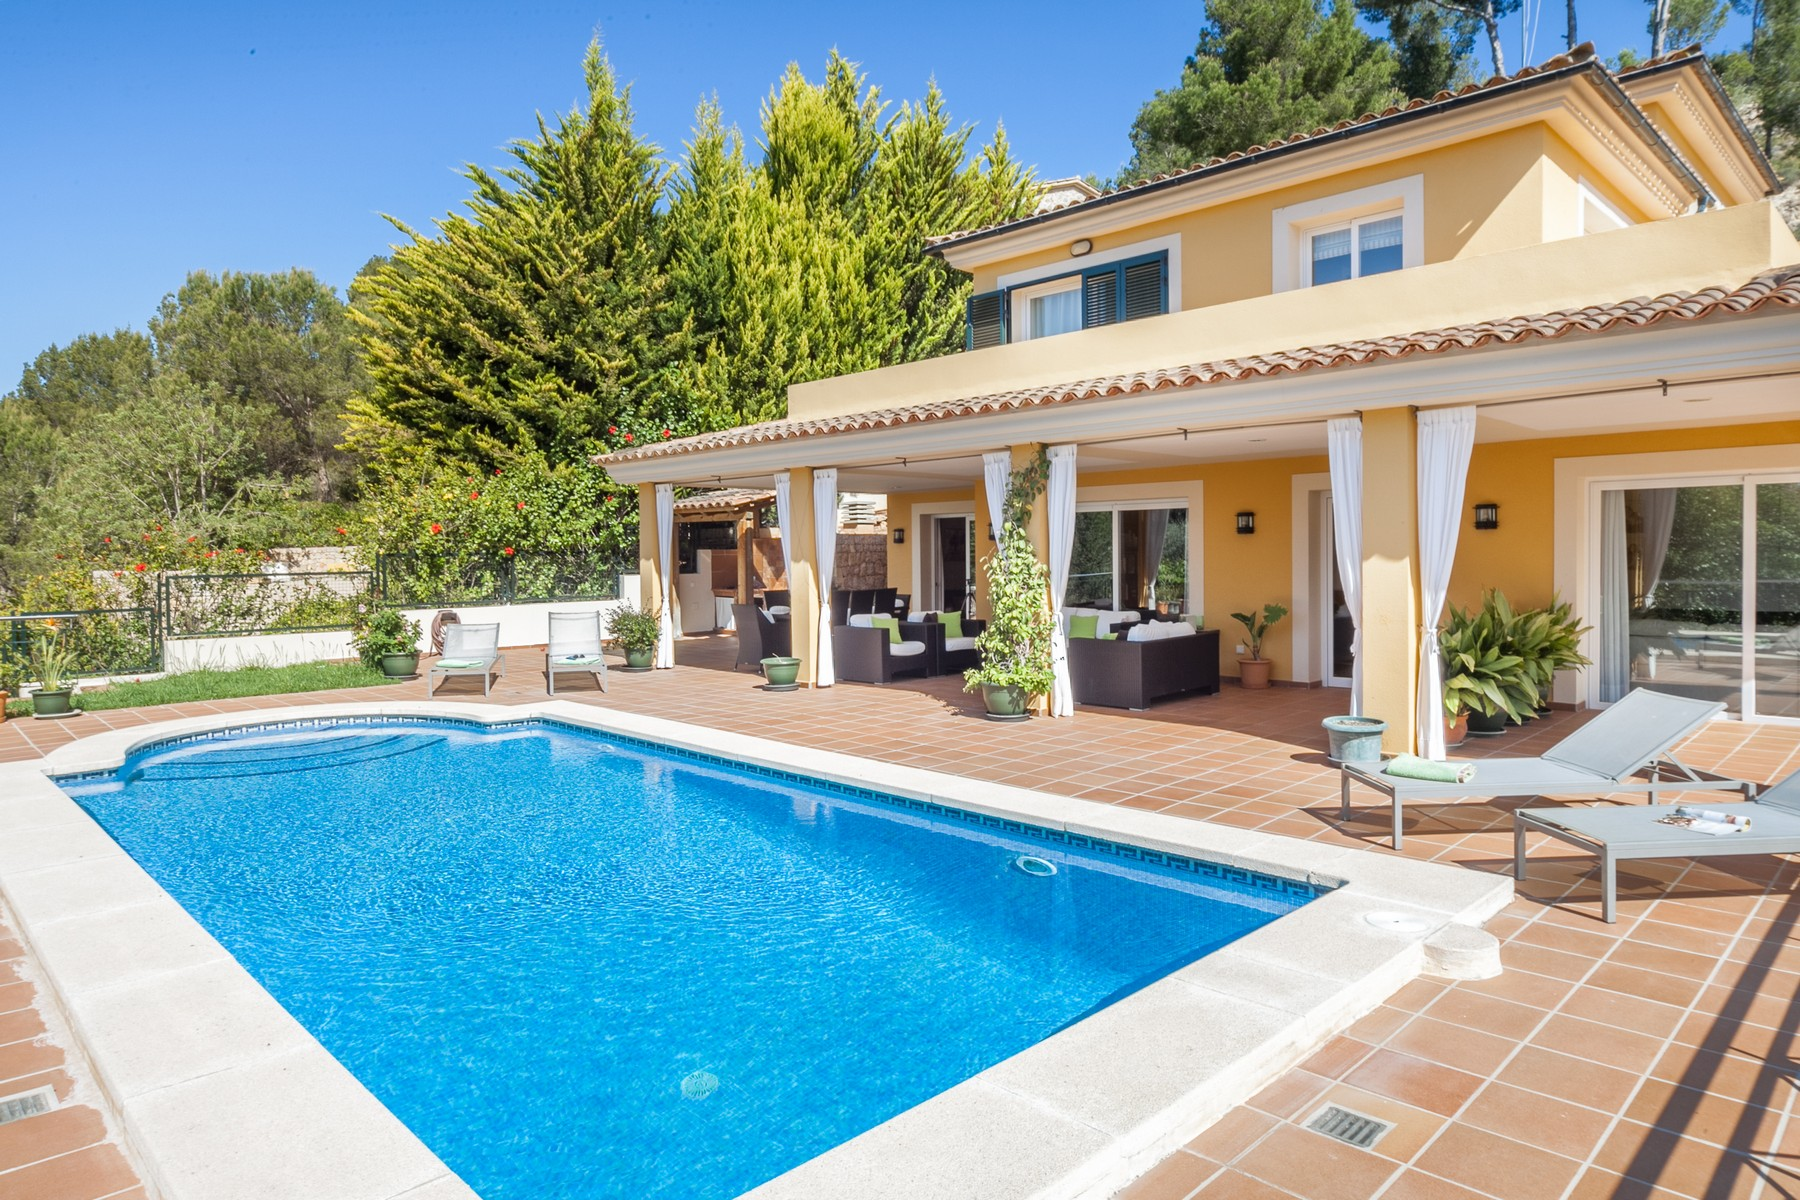 Single Family Home for Sale at Villa with panoramic views in Bendinat Bendinat, Mallorca, 07003 Spain